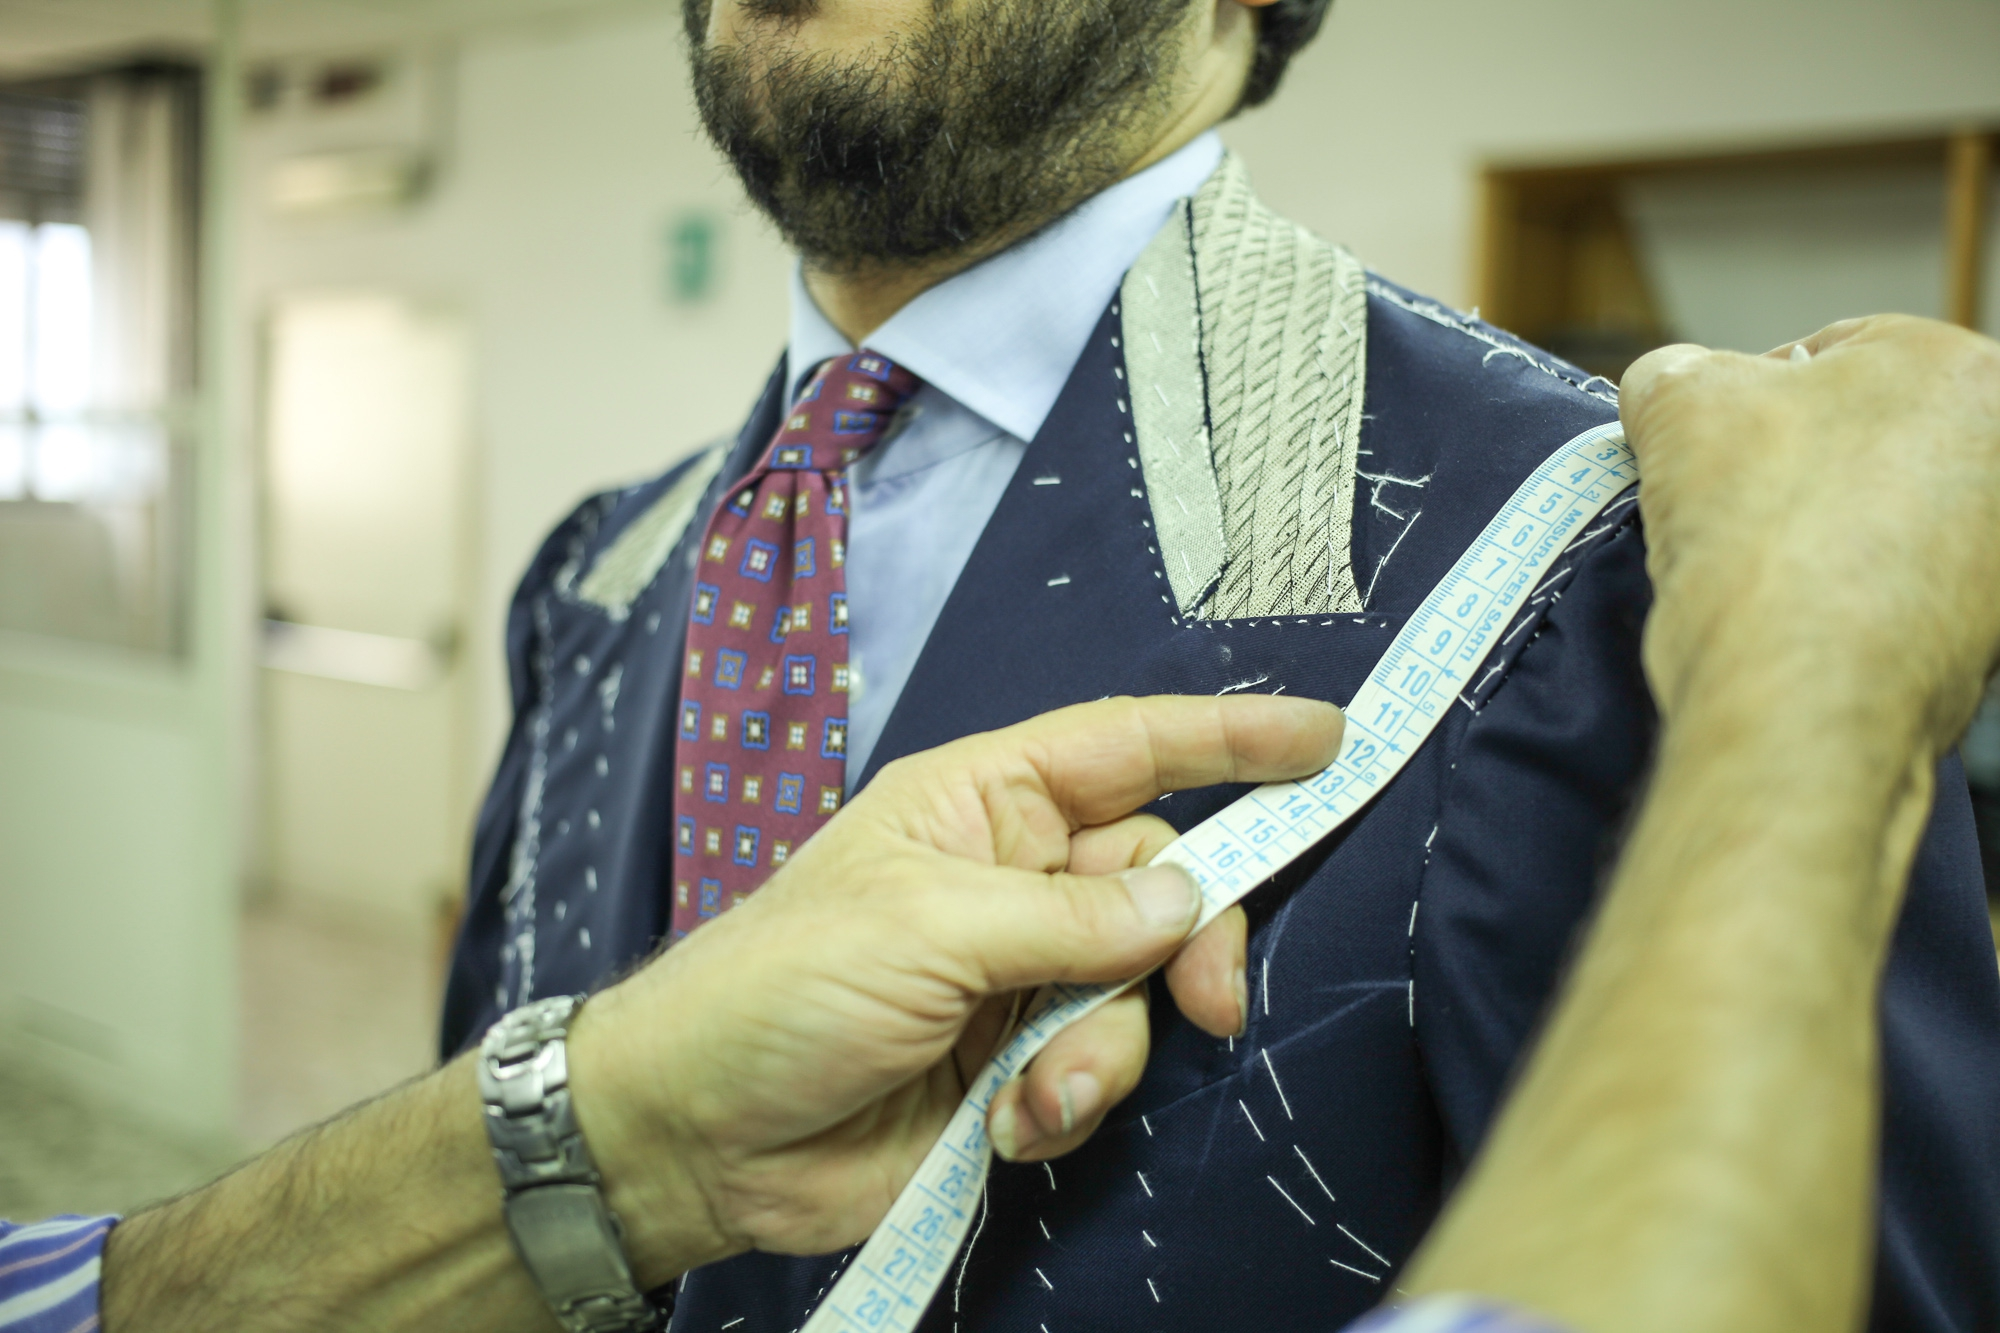 Edesim - Concave Lapel Line Fitting of a three-piece suit made from Holland&Sherry fabric